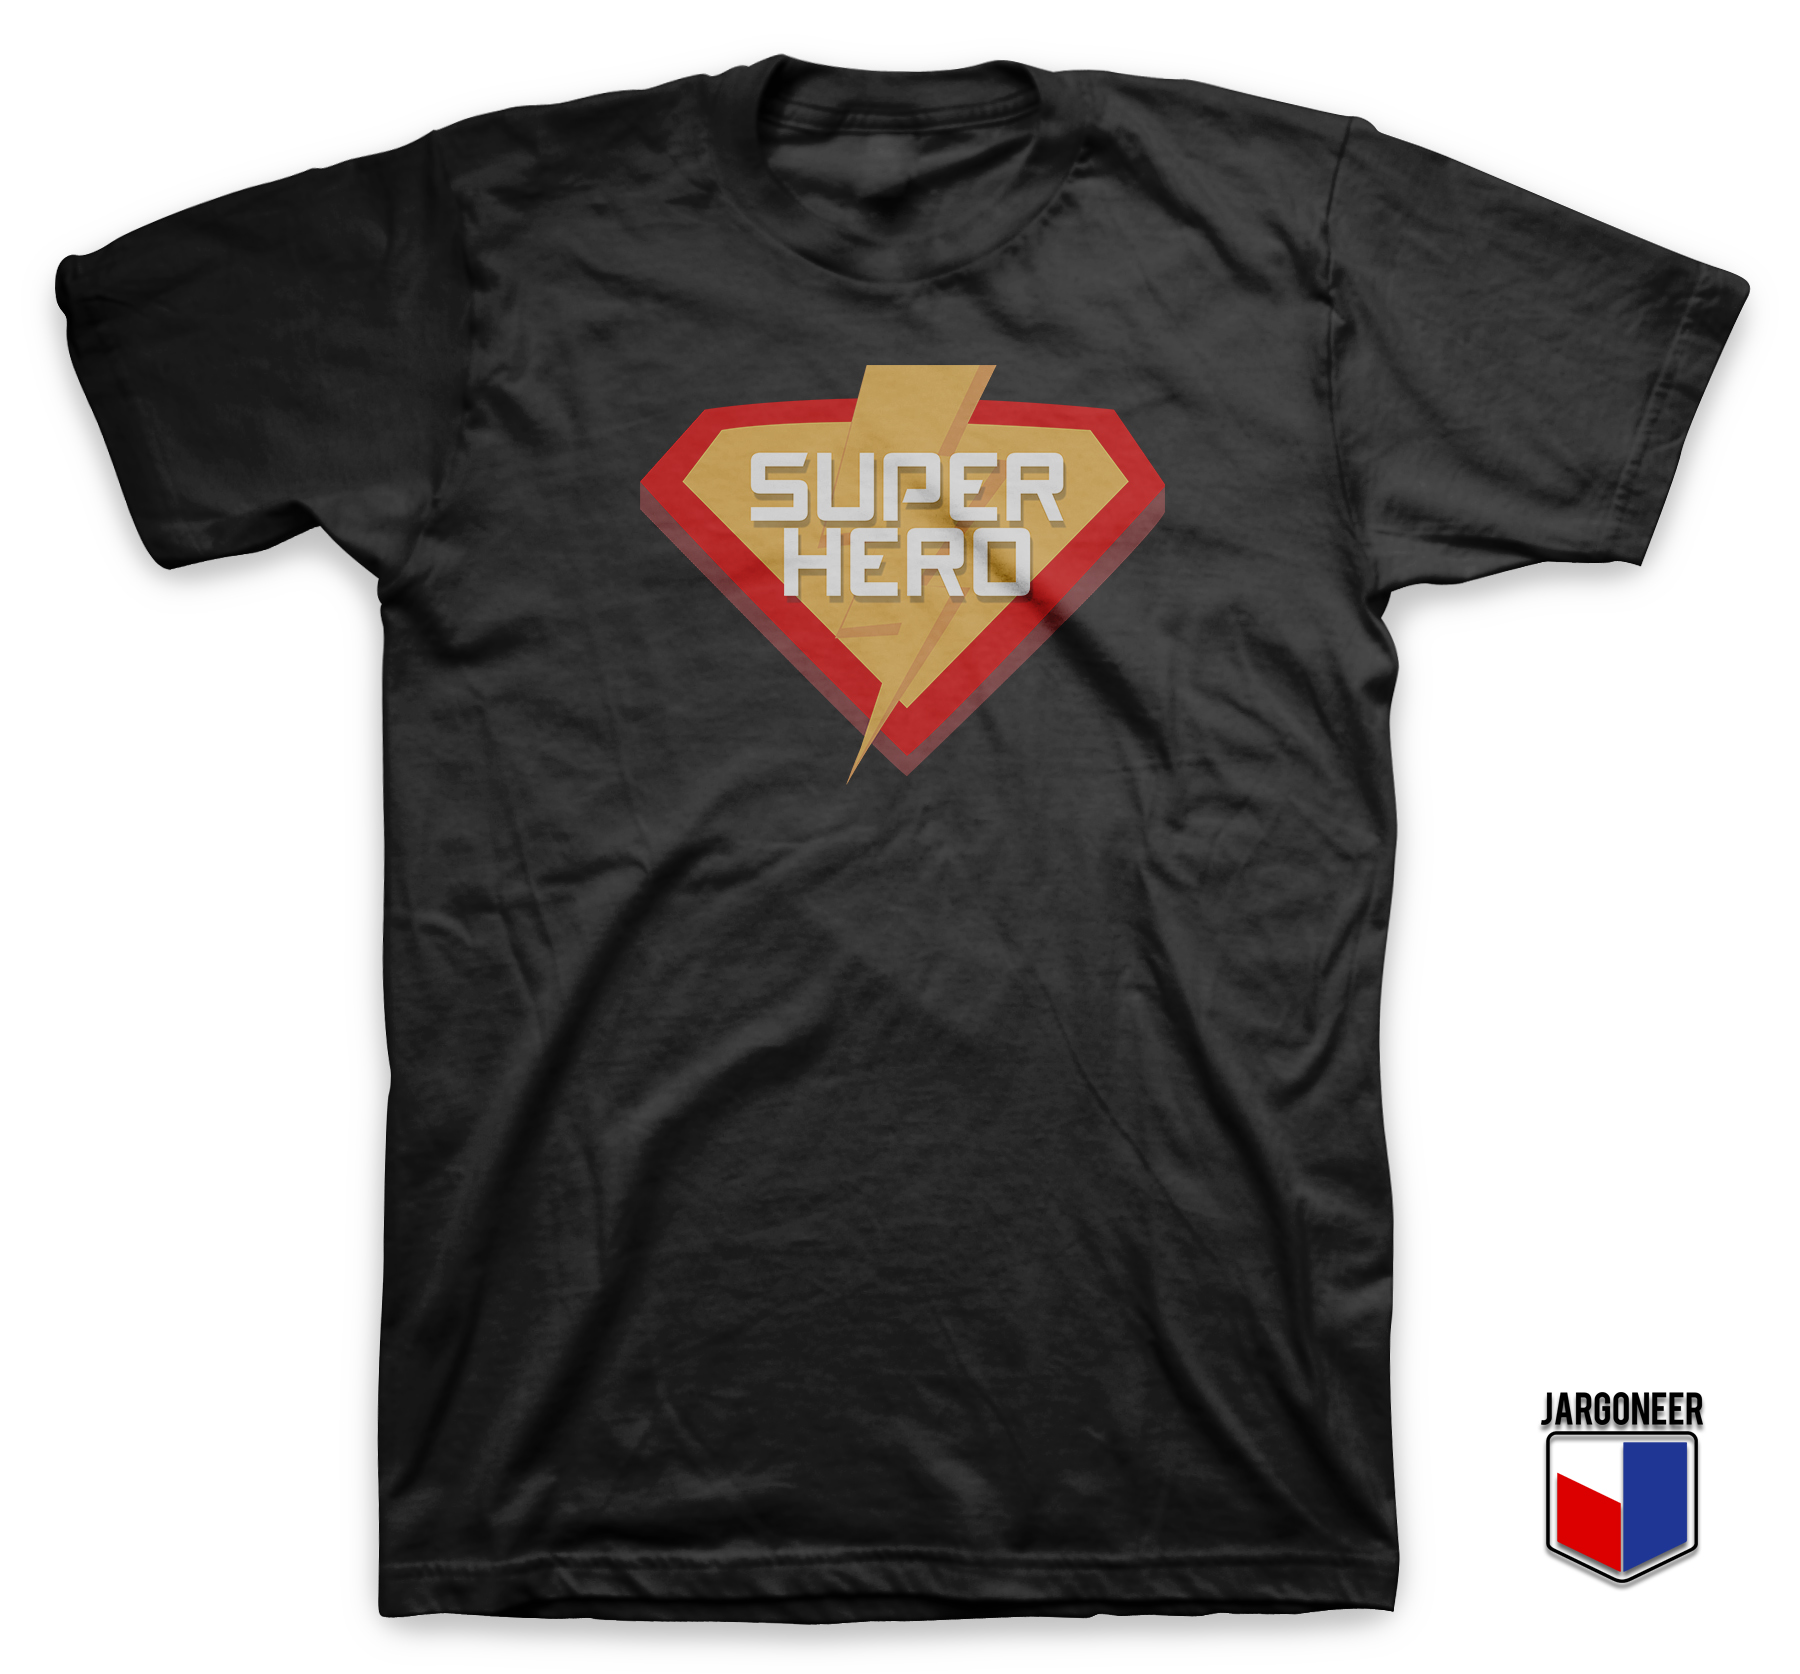 super hero t shirt ideas t shirt cool shirt designs. Black Bedroom Furniture Sets. Home Design Ideas